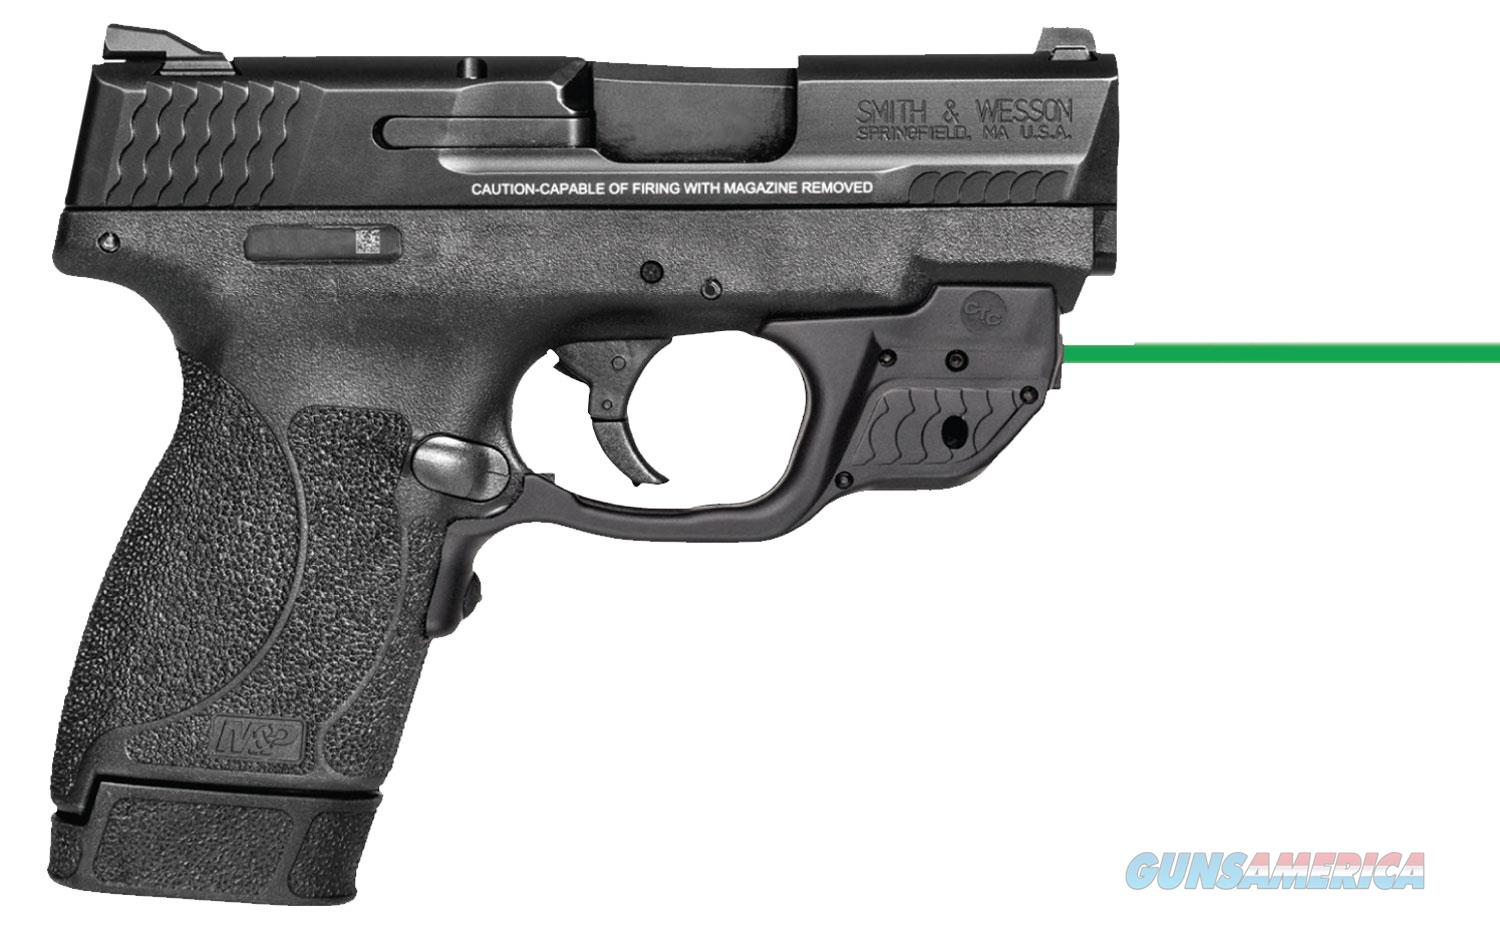 """Smith & Wesson 11881 M&P 45 Shield M2.0 SAFETY Crimson Trace Green Laserguard """"NO CREDIT CARD FEE  Guns > Pistols > Smith & Wesson Pistols - Autos > Shield"""